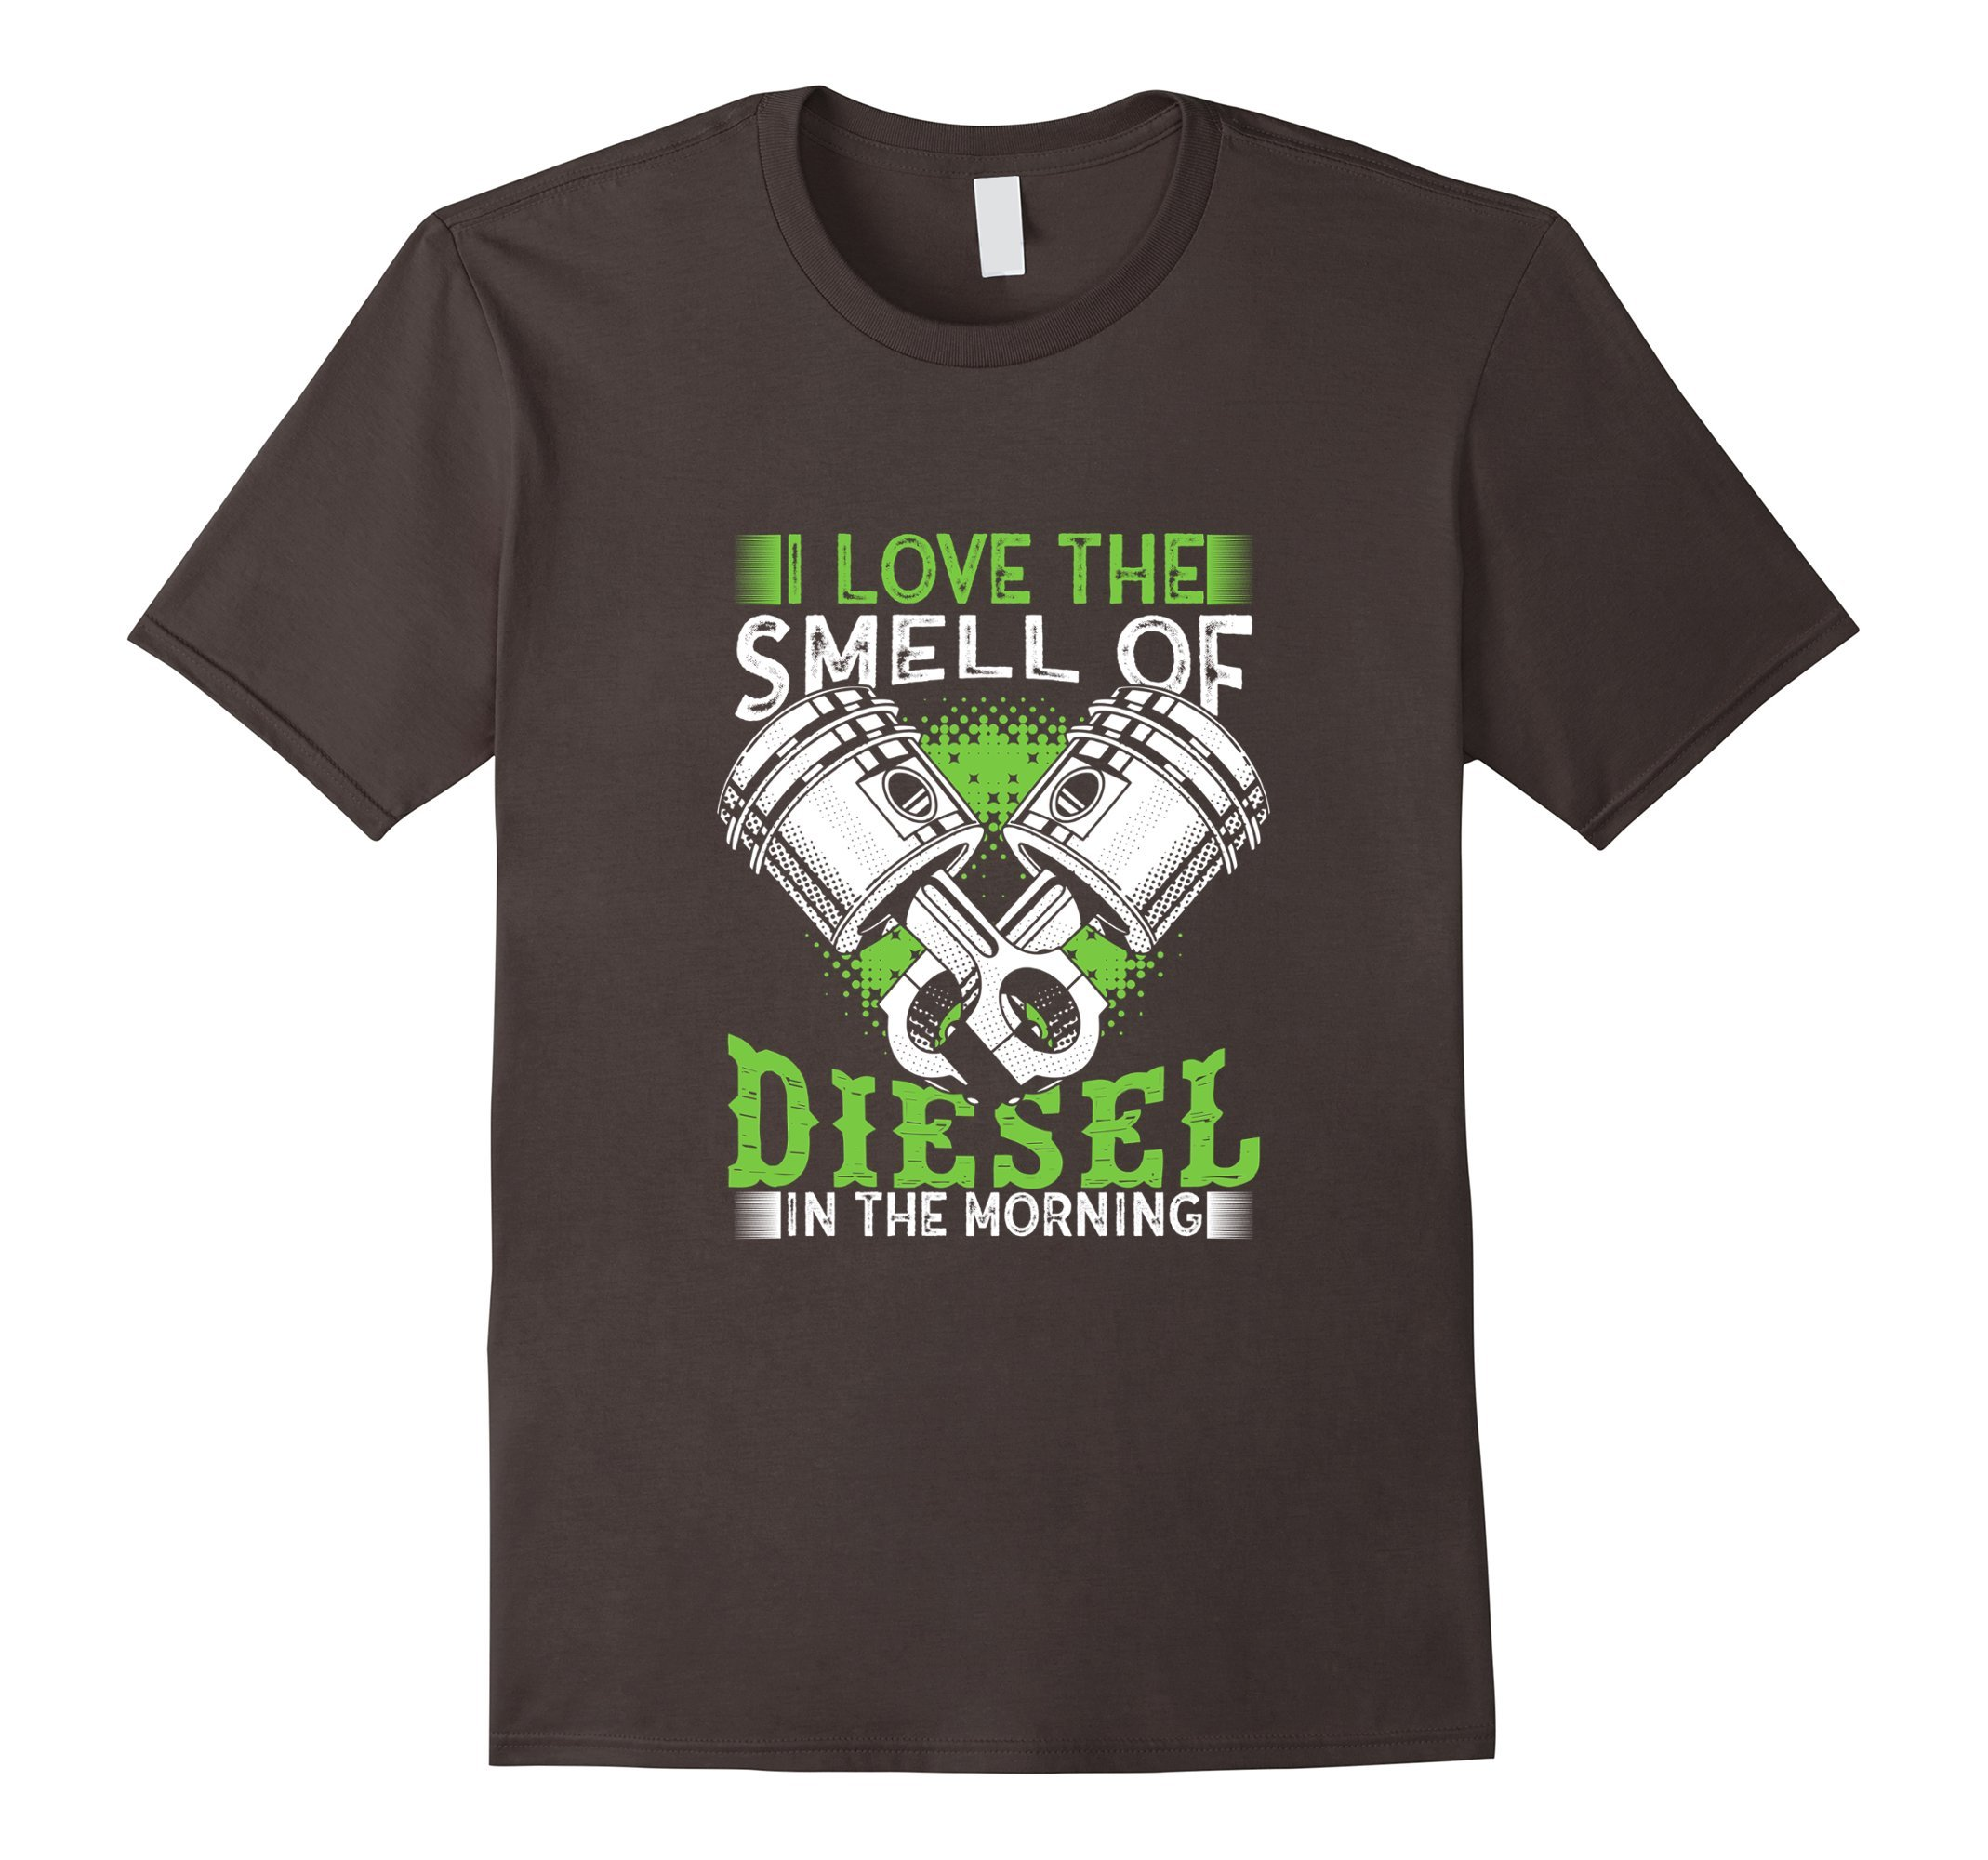 Mens I Love the Smell of Diesel in the Morning Truck Driver Shirt Large Asphalt by Diesel (Image #1)